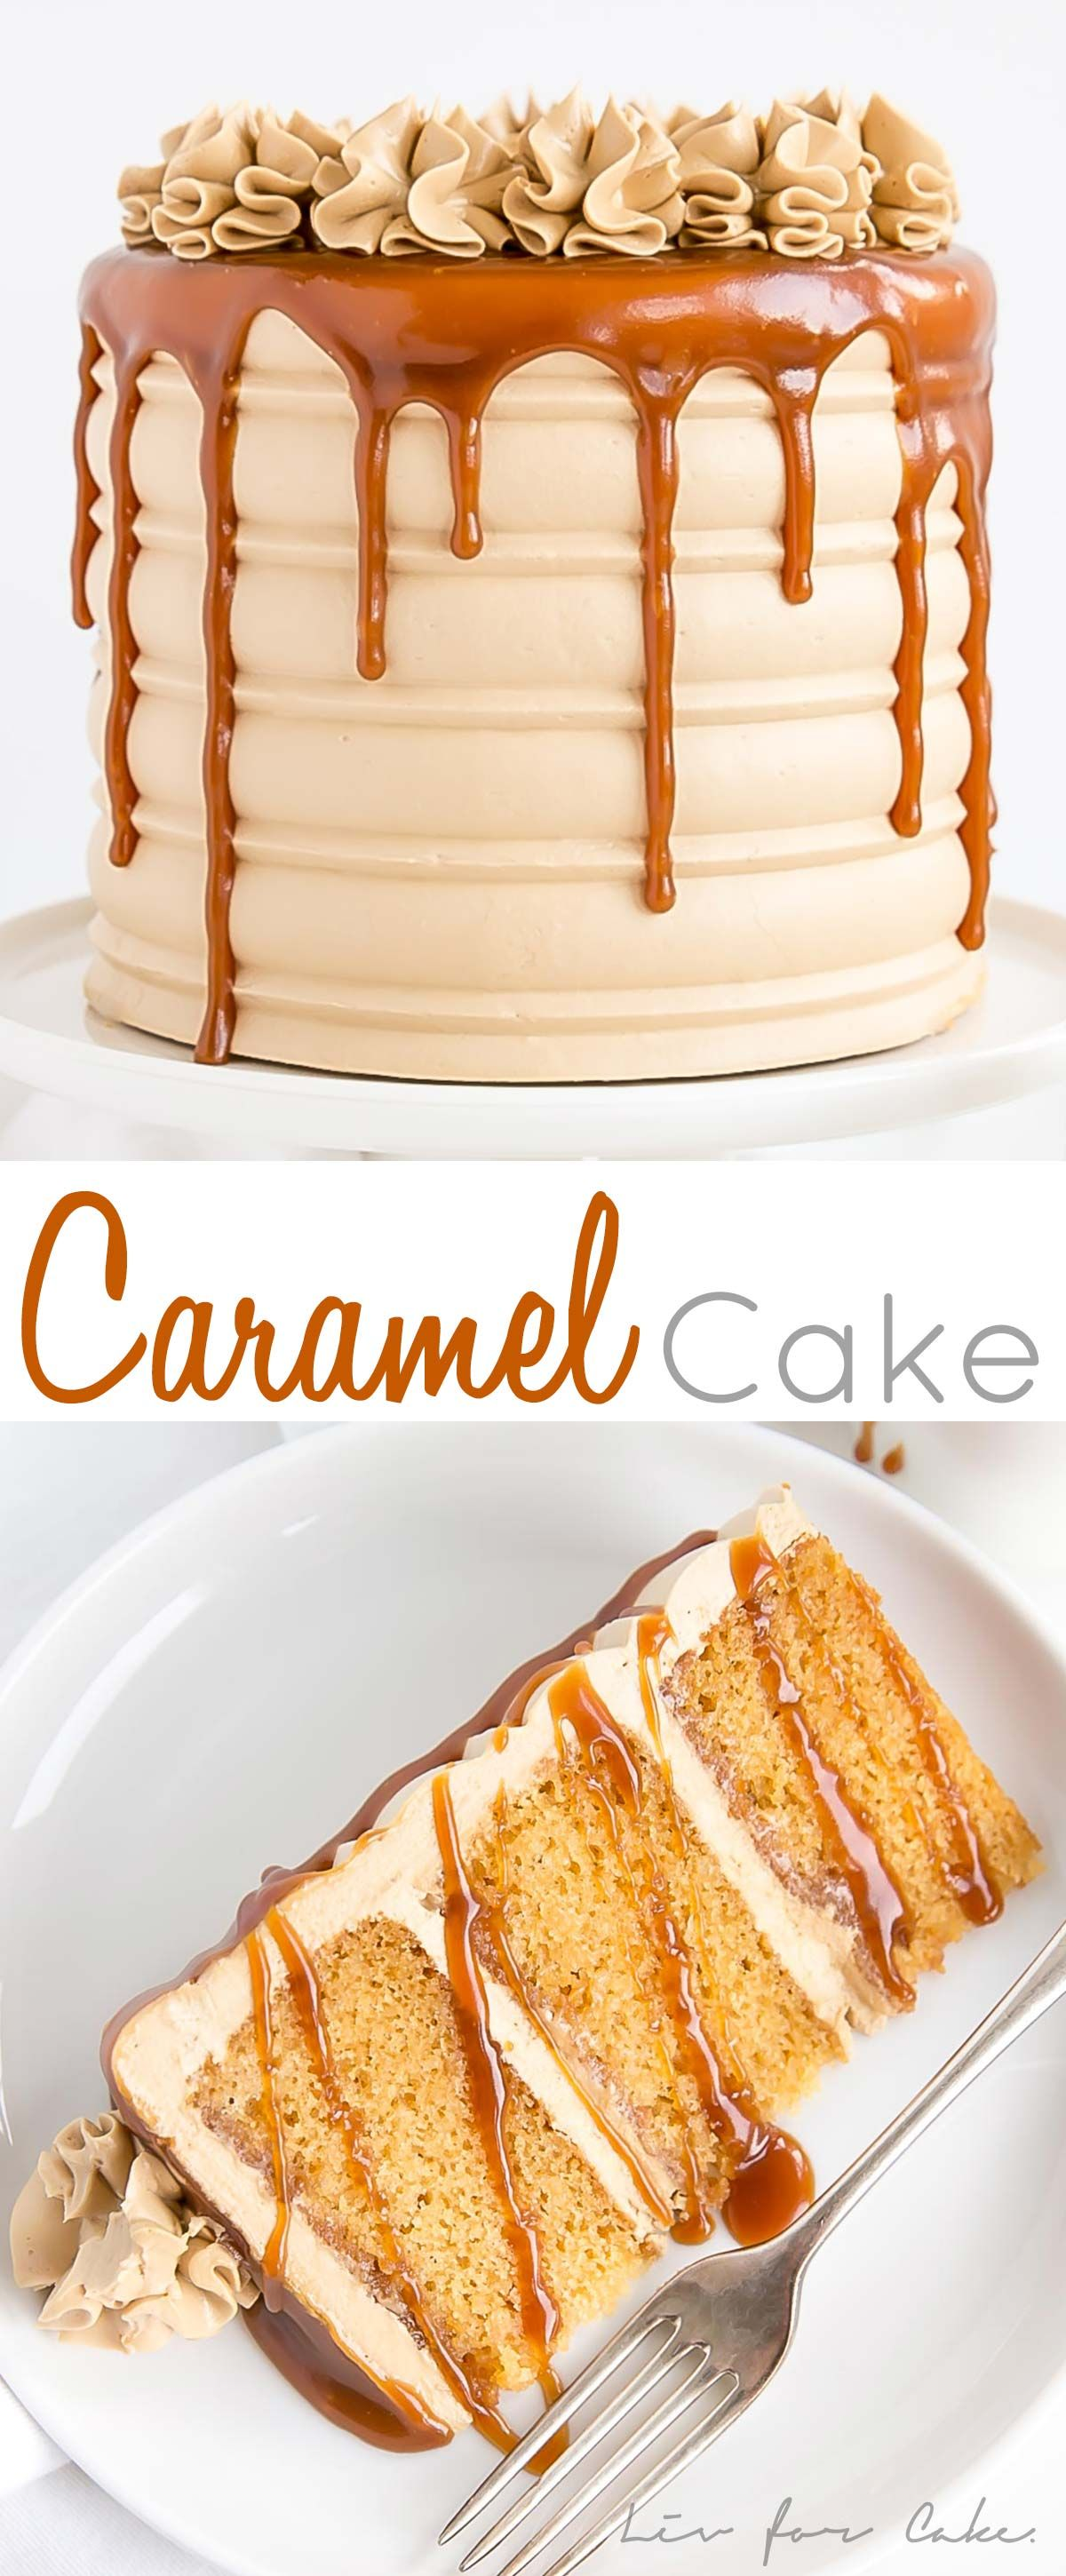 This Caramel Cake Is Perfect For That Die Hard Caramel Fan In Your